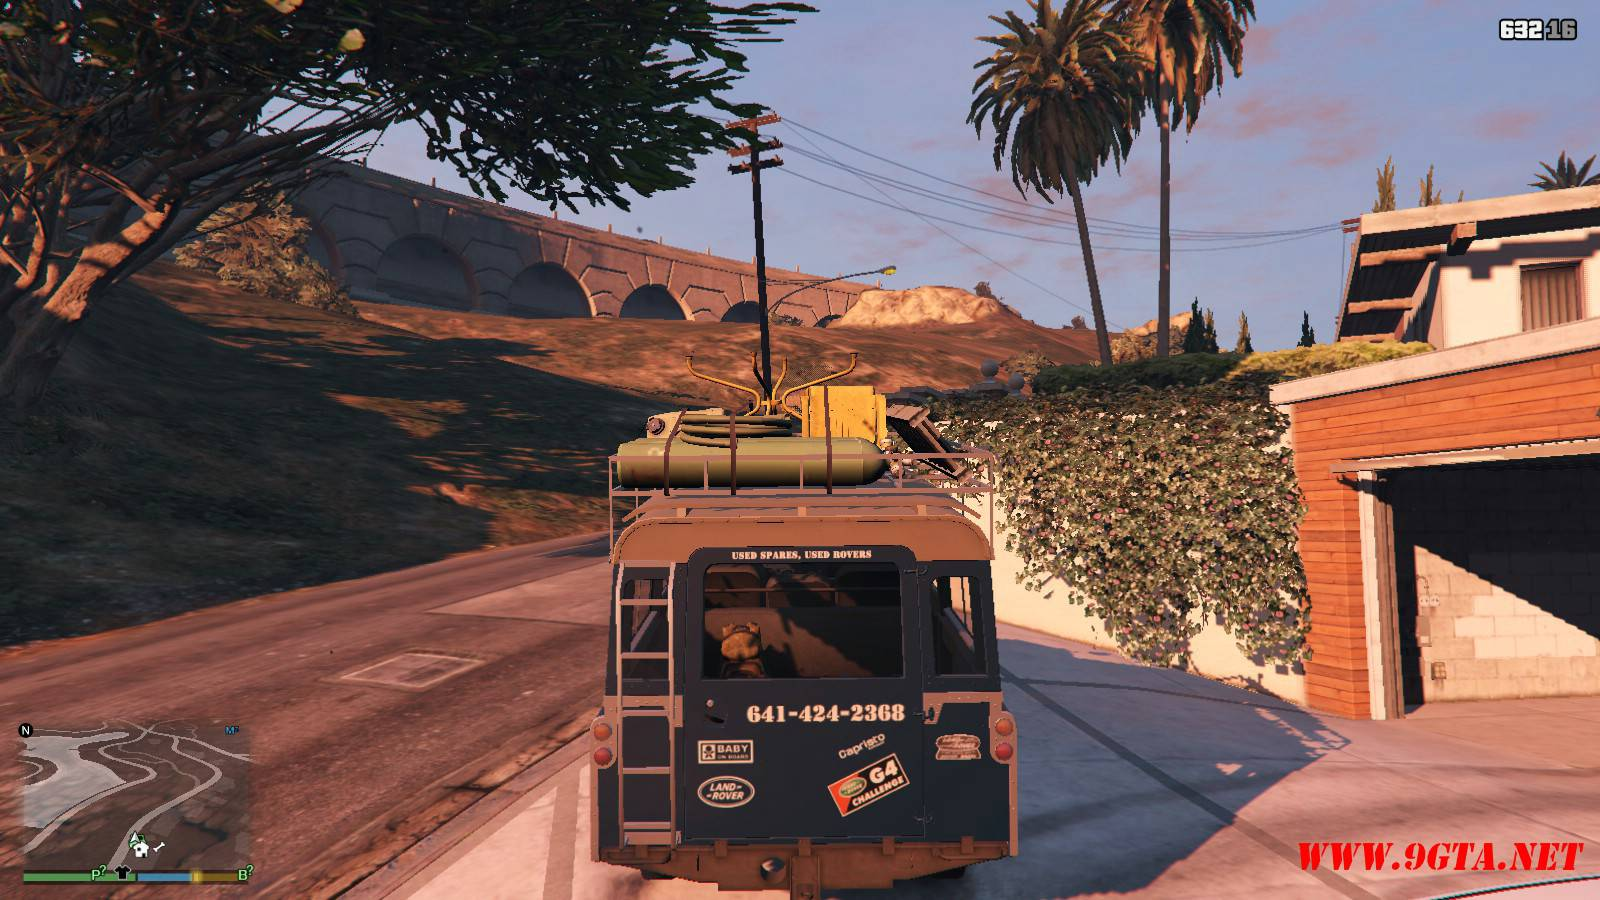 1971 Land Rover Series II Model 109A GTA5 Mods (3)